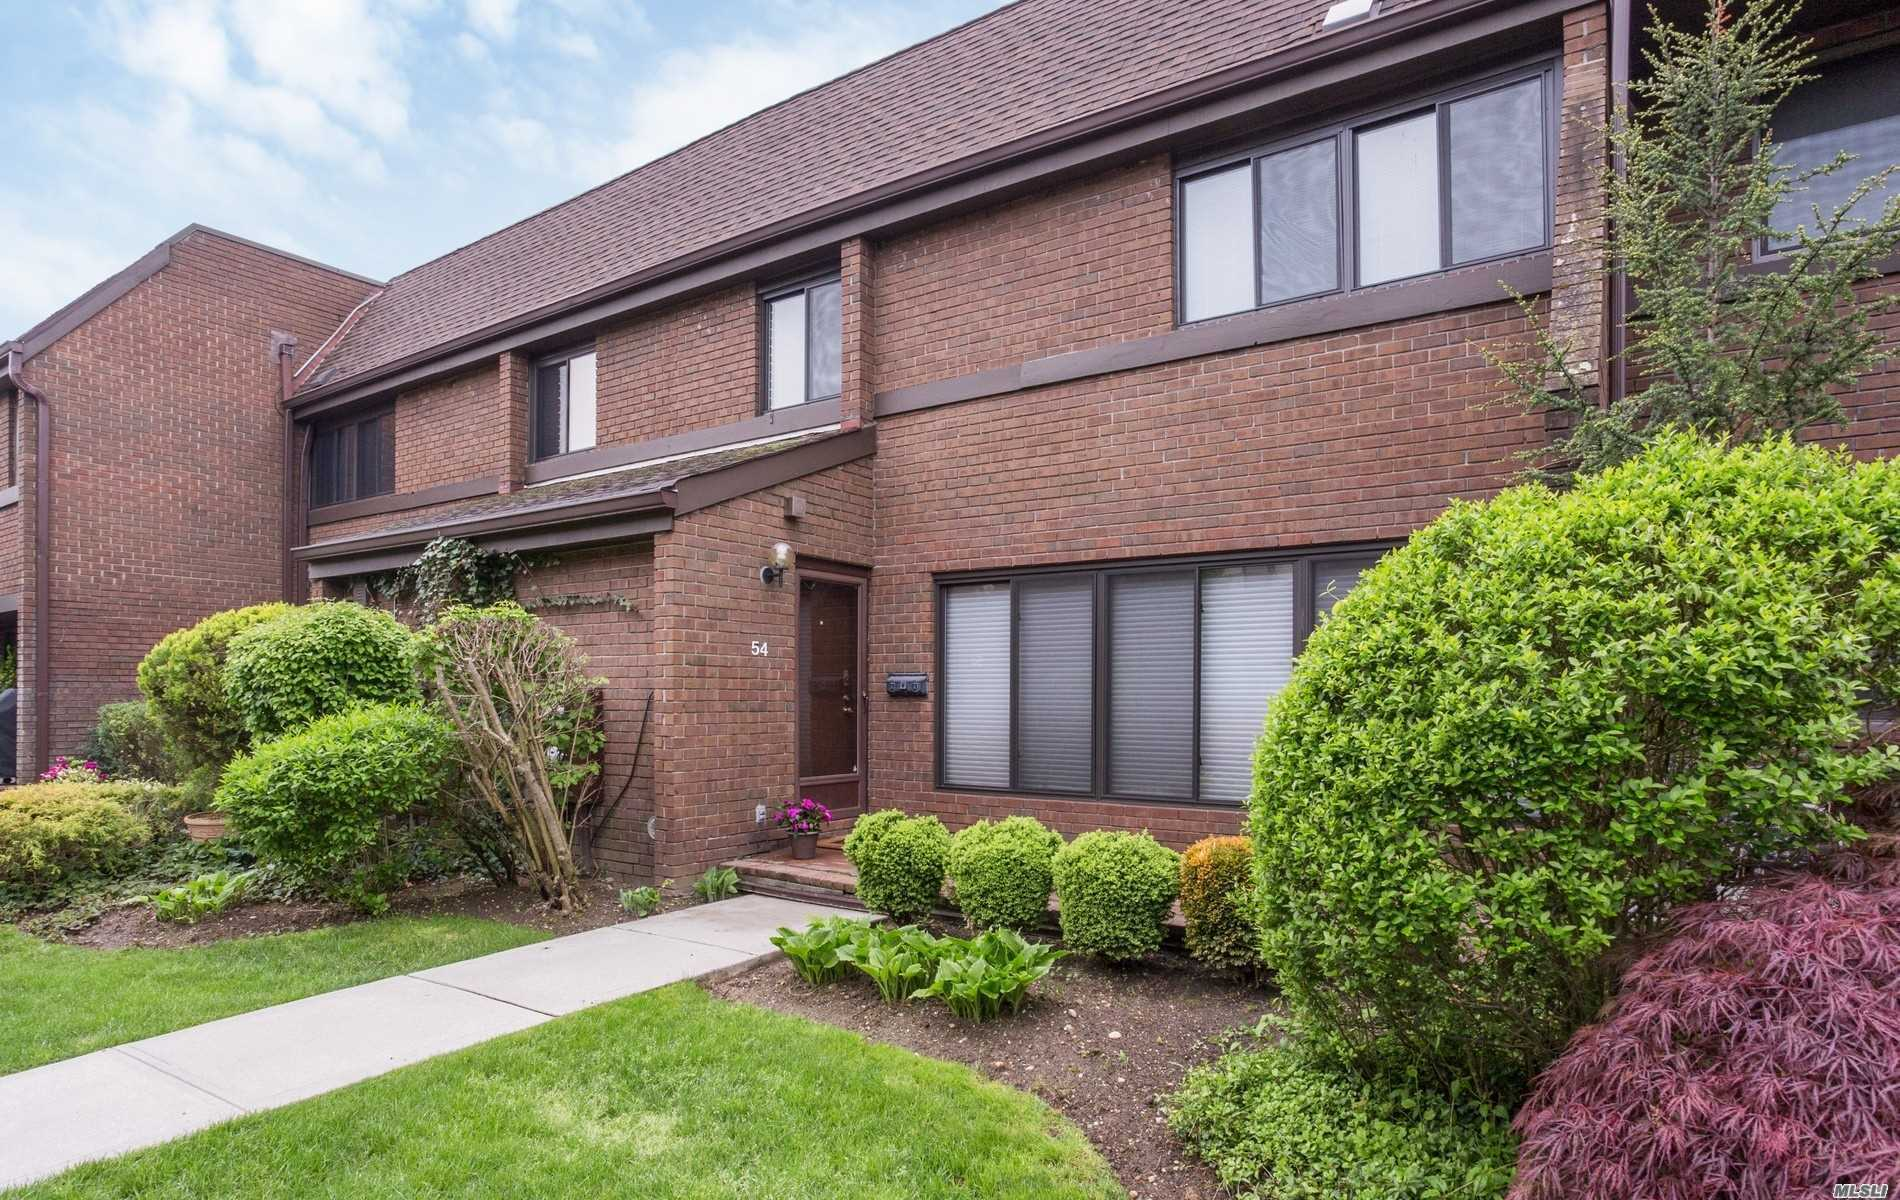 Property for sale at 54 Chestnut Hill, Roslyn,  NY 11576